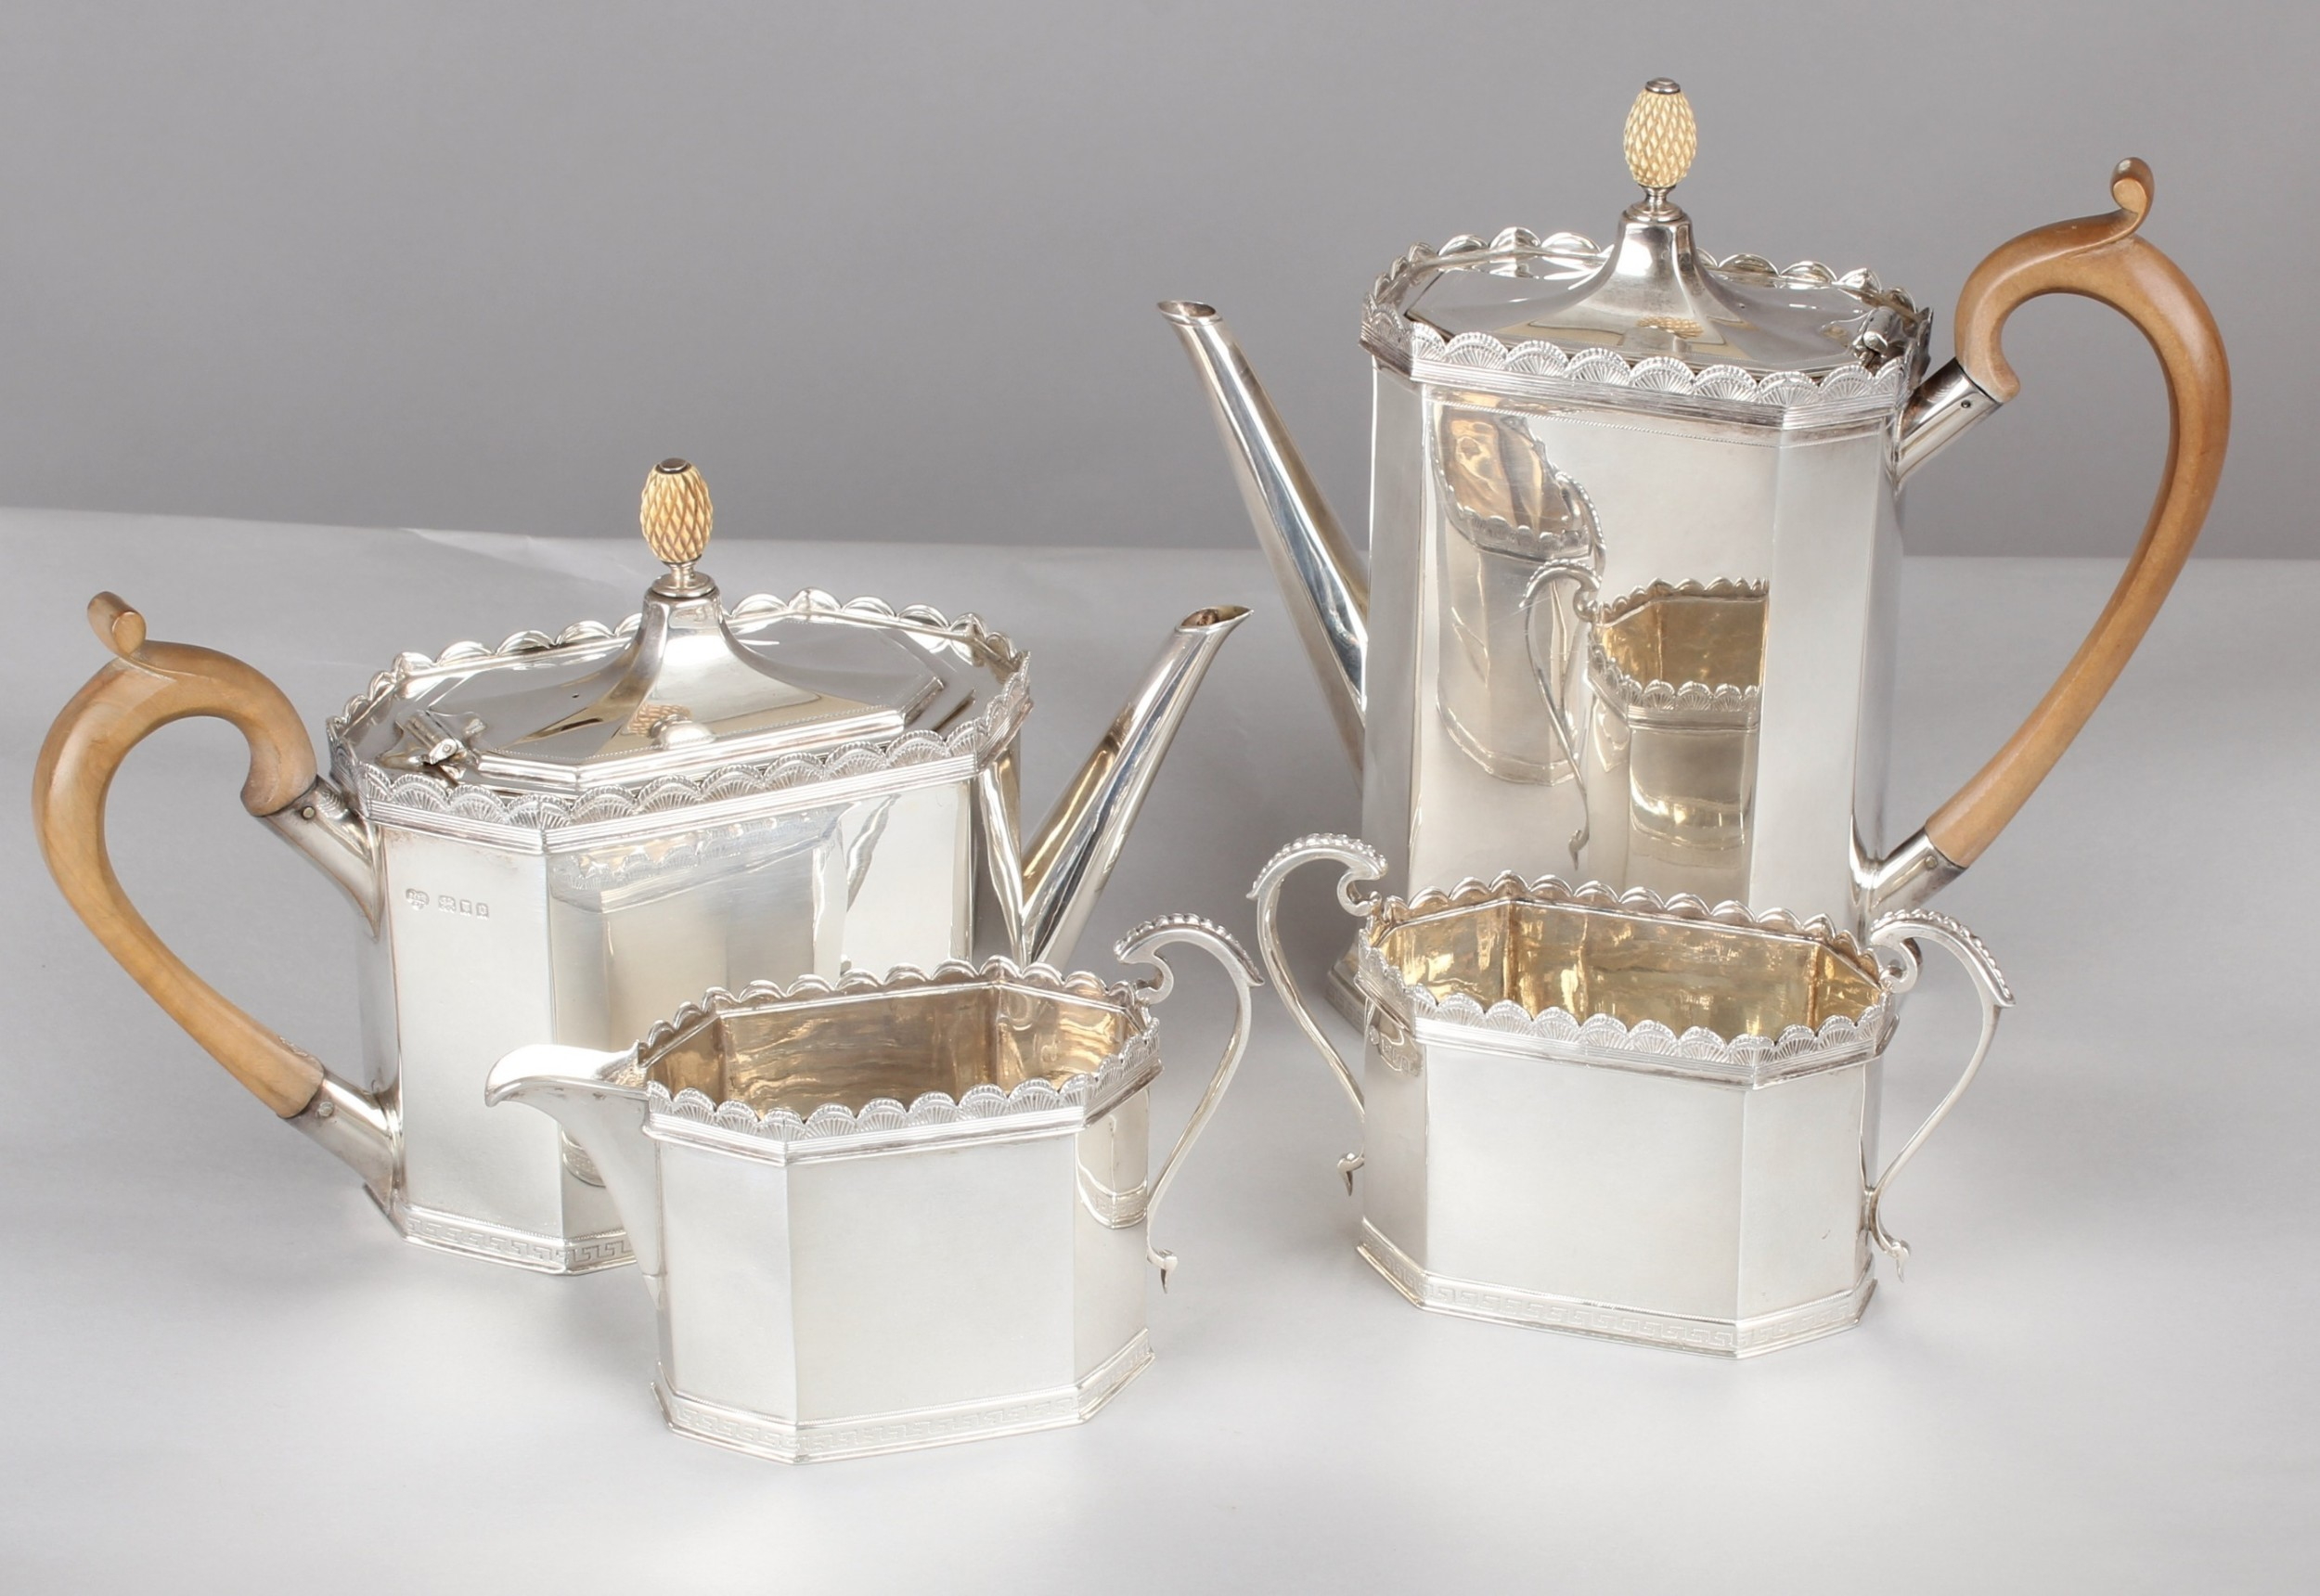 fine quality george v heavygauge silver fourpiece tea and coffee service in the late 18th century style